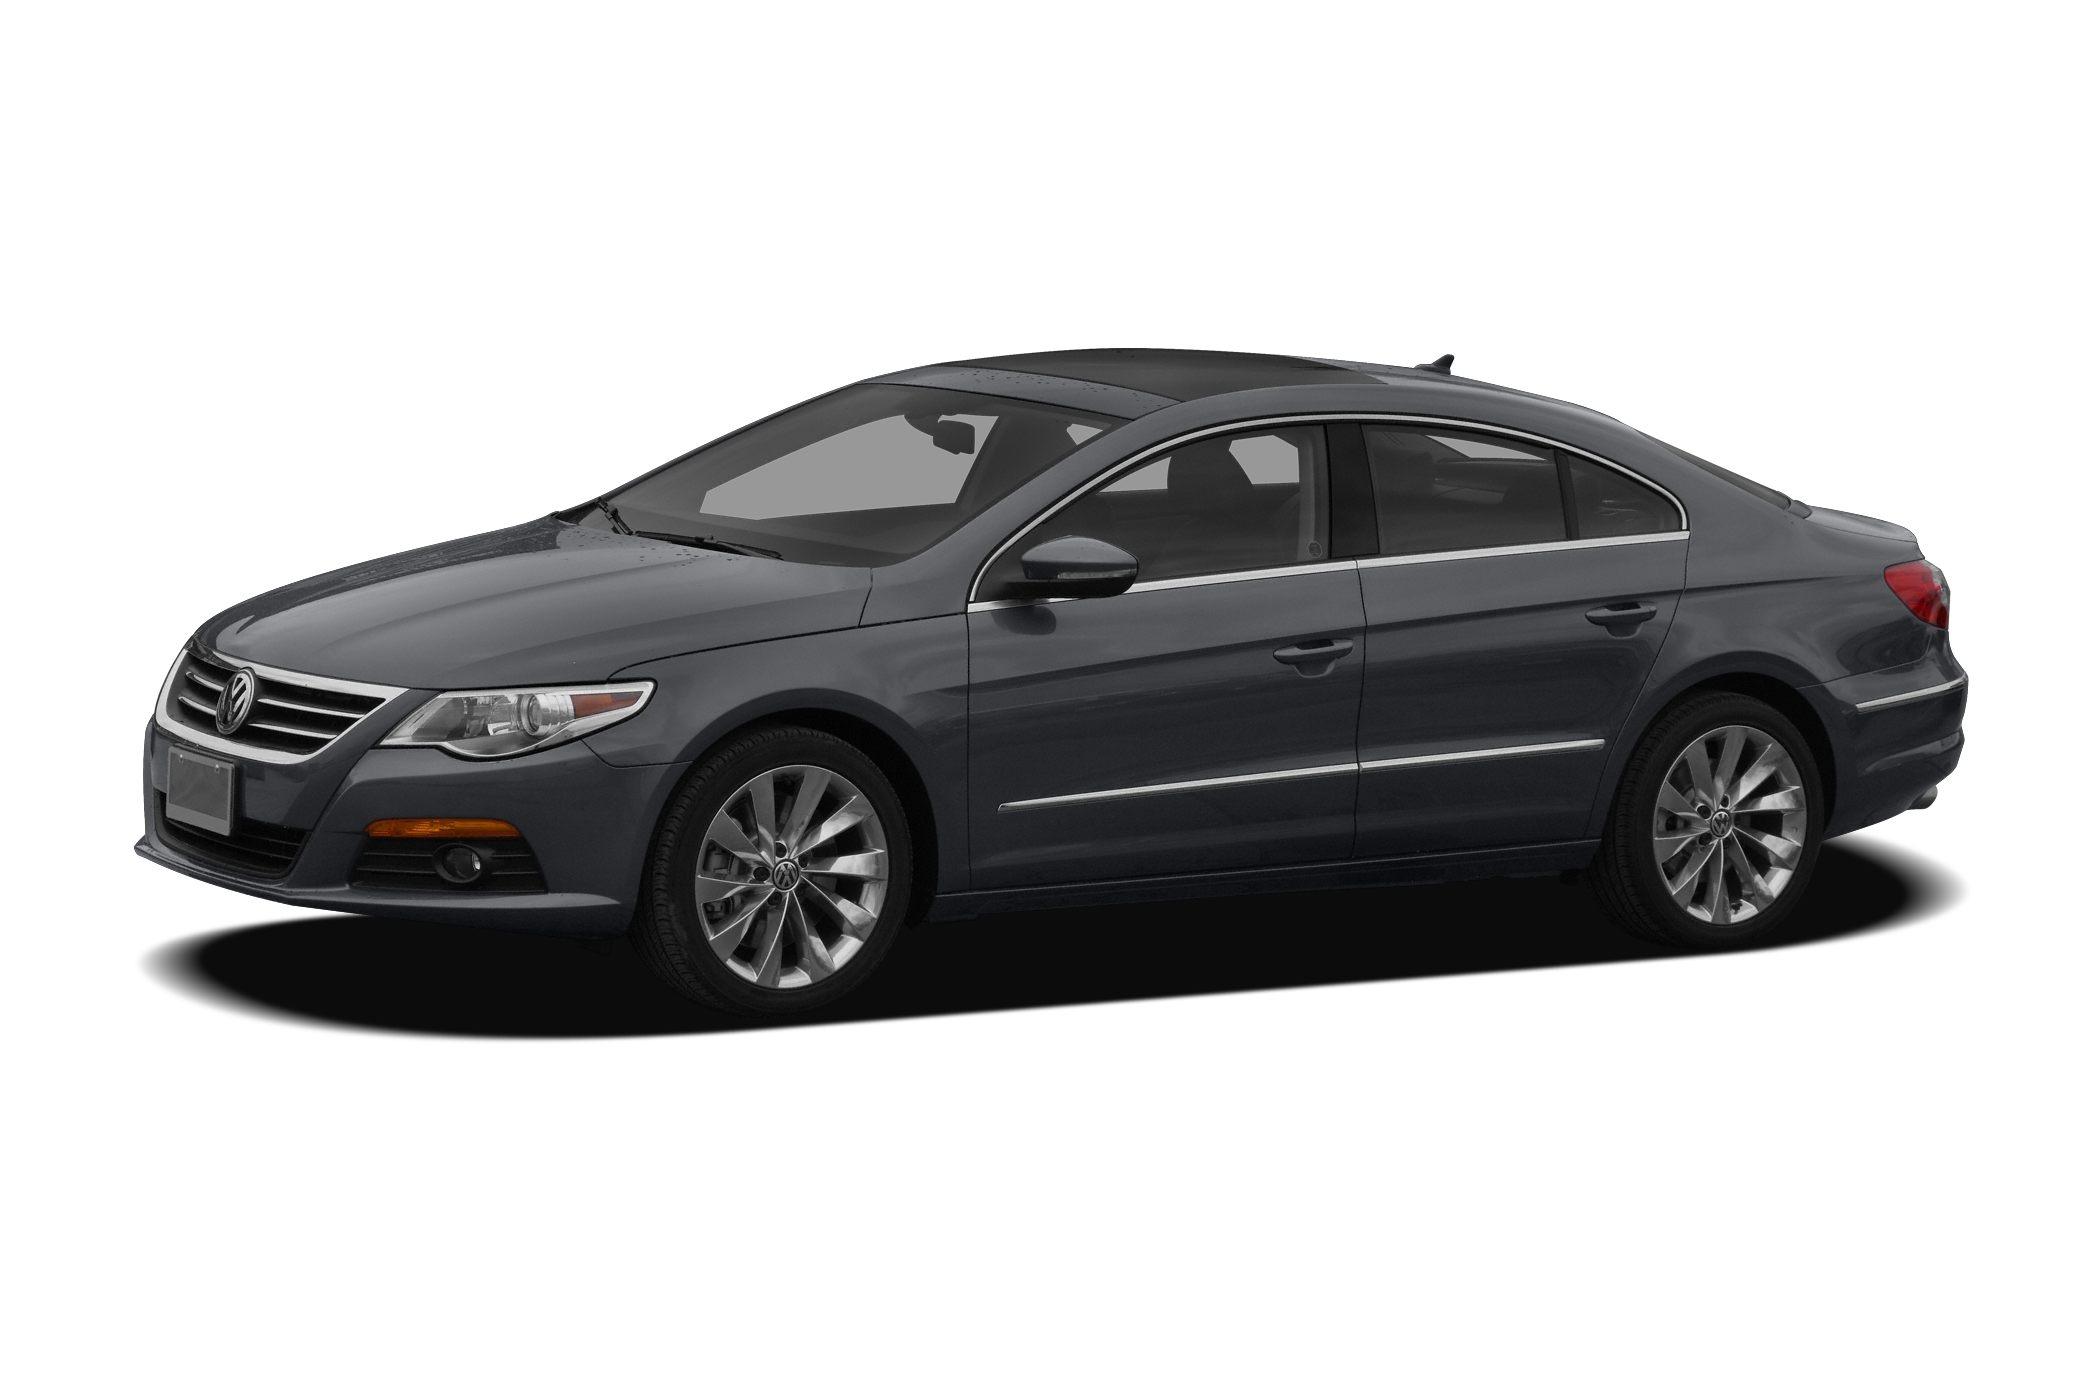 2012 Volkswagen CC Lux Sedan for sale in Dallas for $18,882 with 41,365 miles